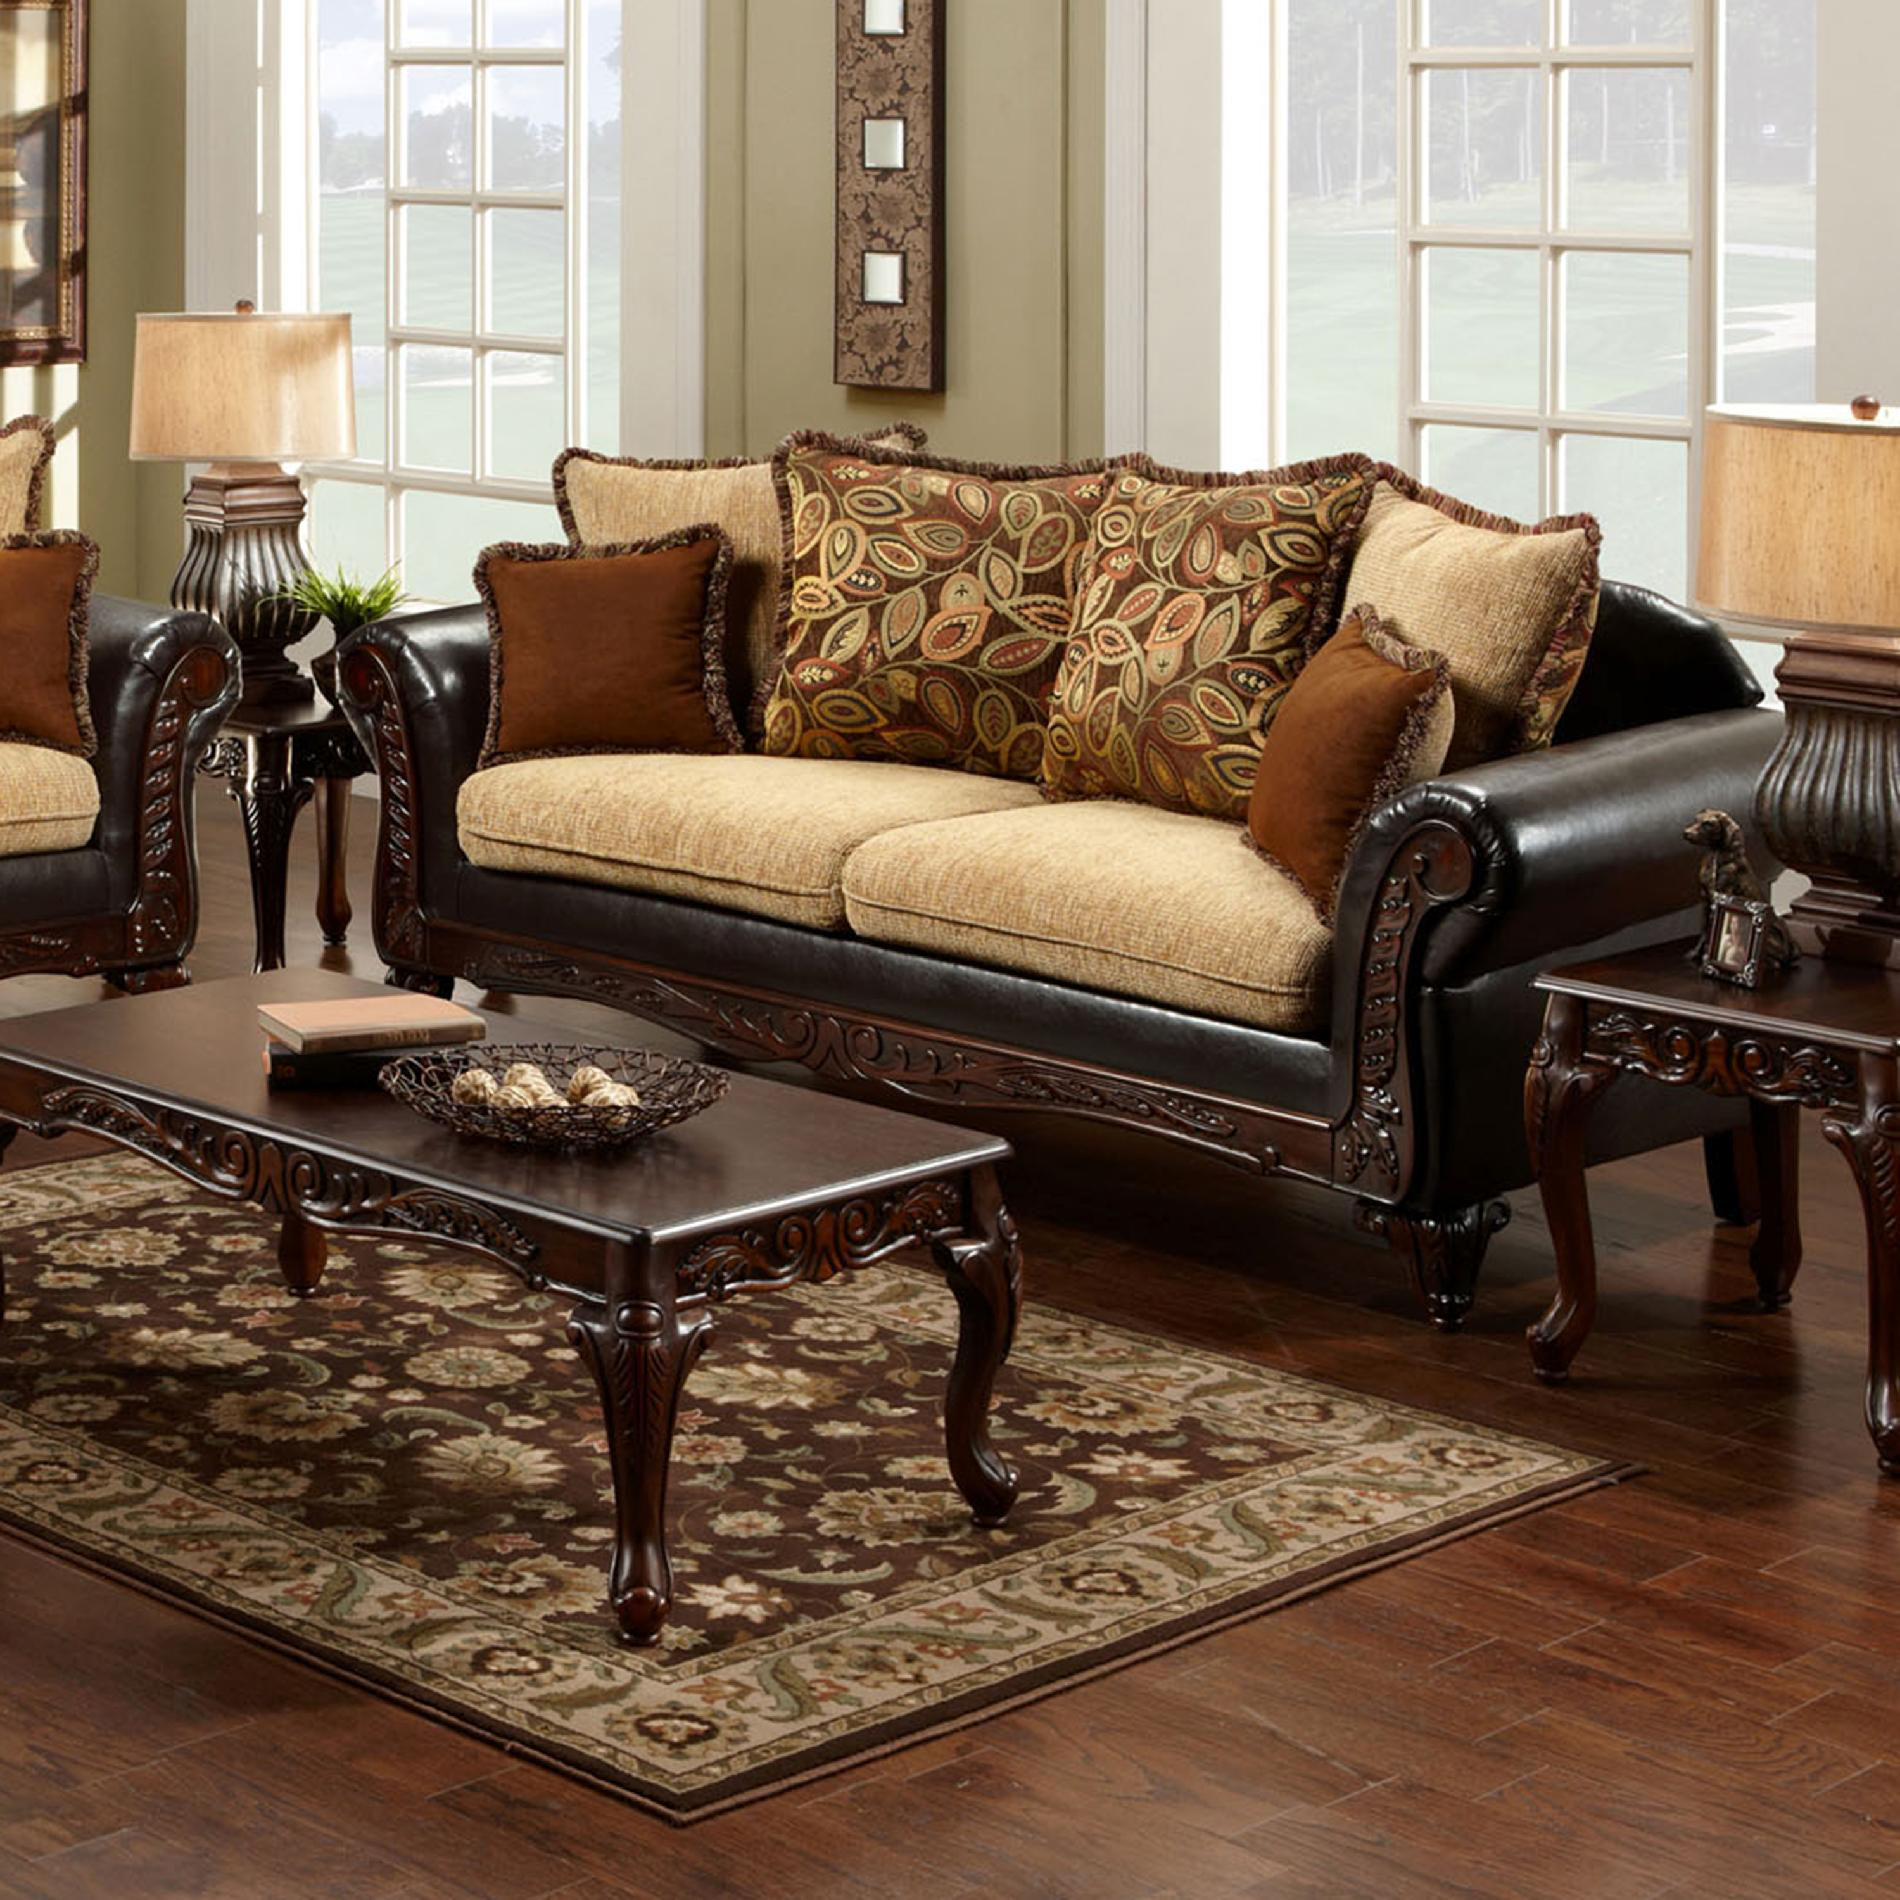 leatherette vs fabric sofa reclining corner bed venetian worldwide doncaster tan and espresso